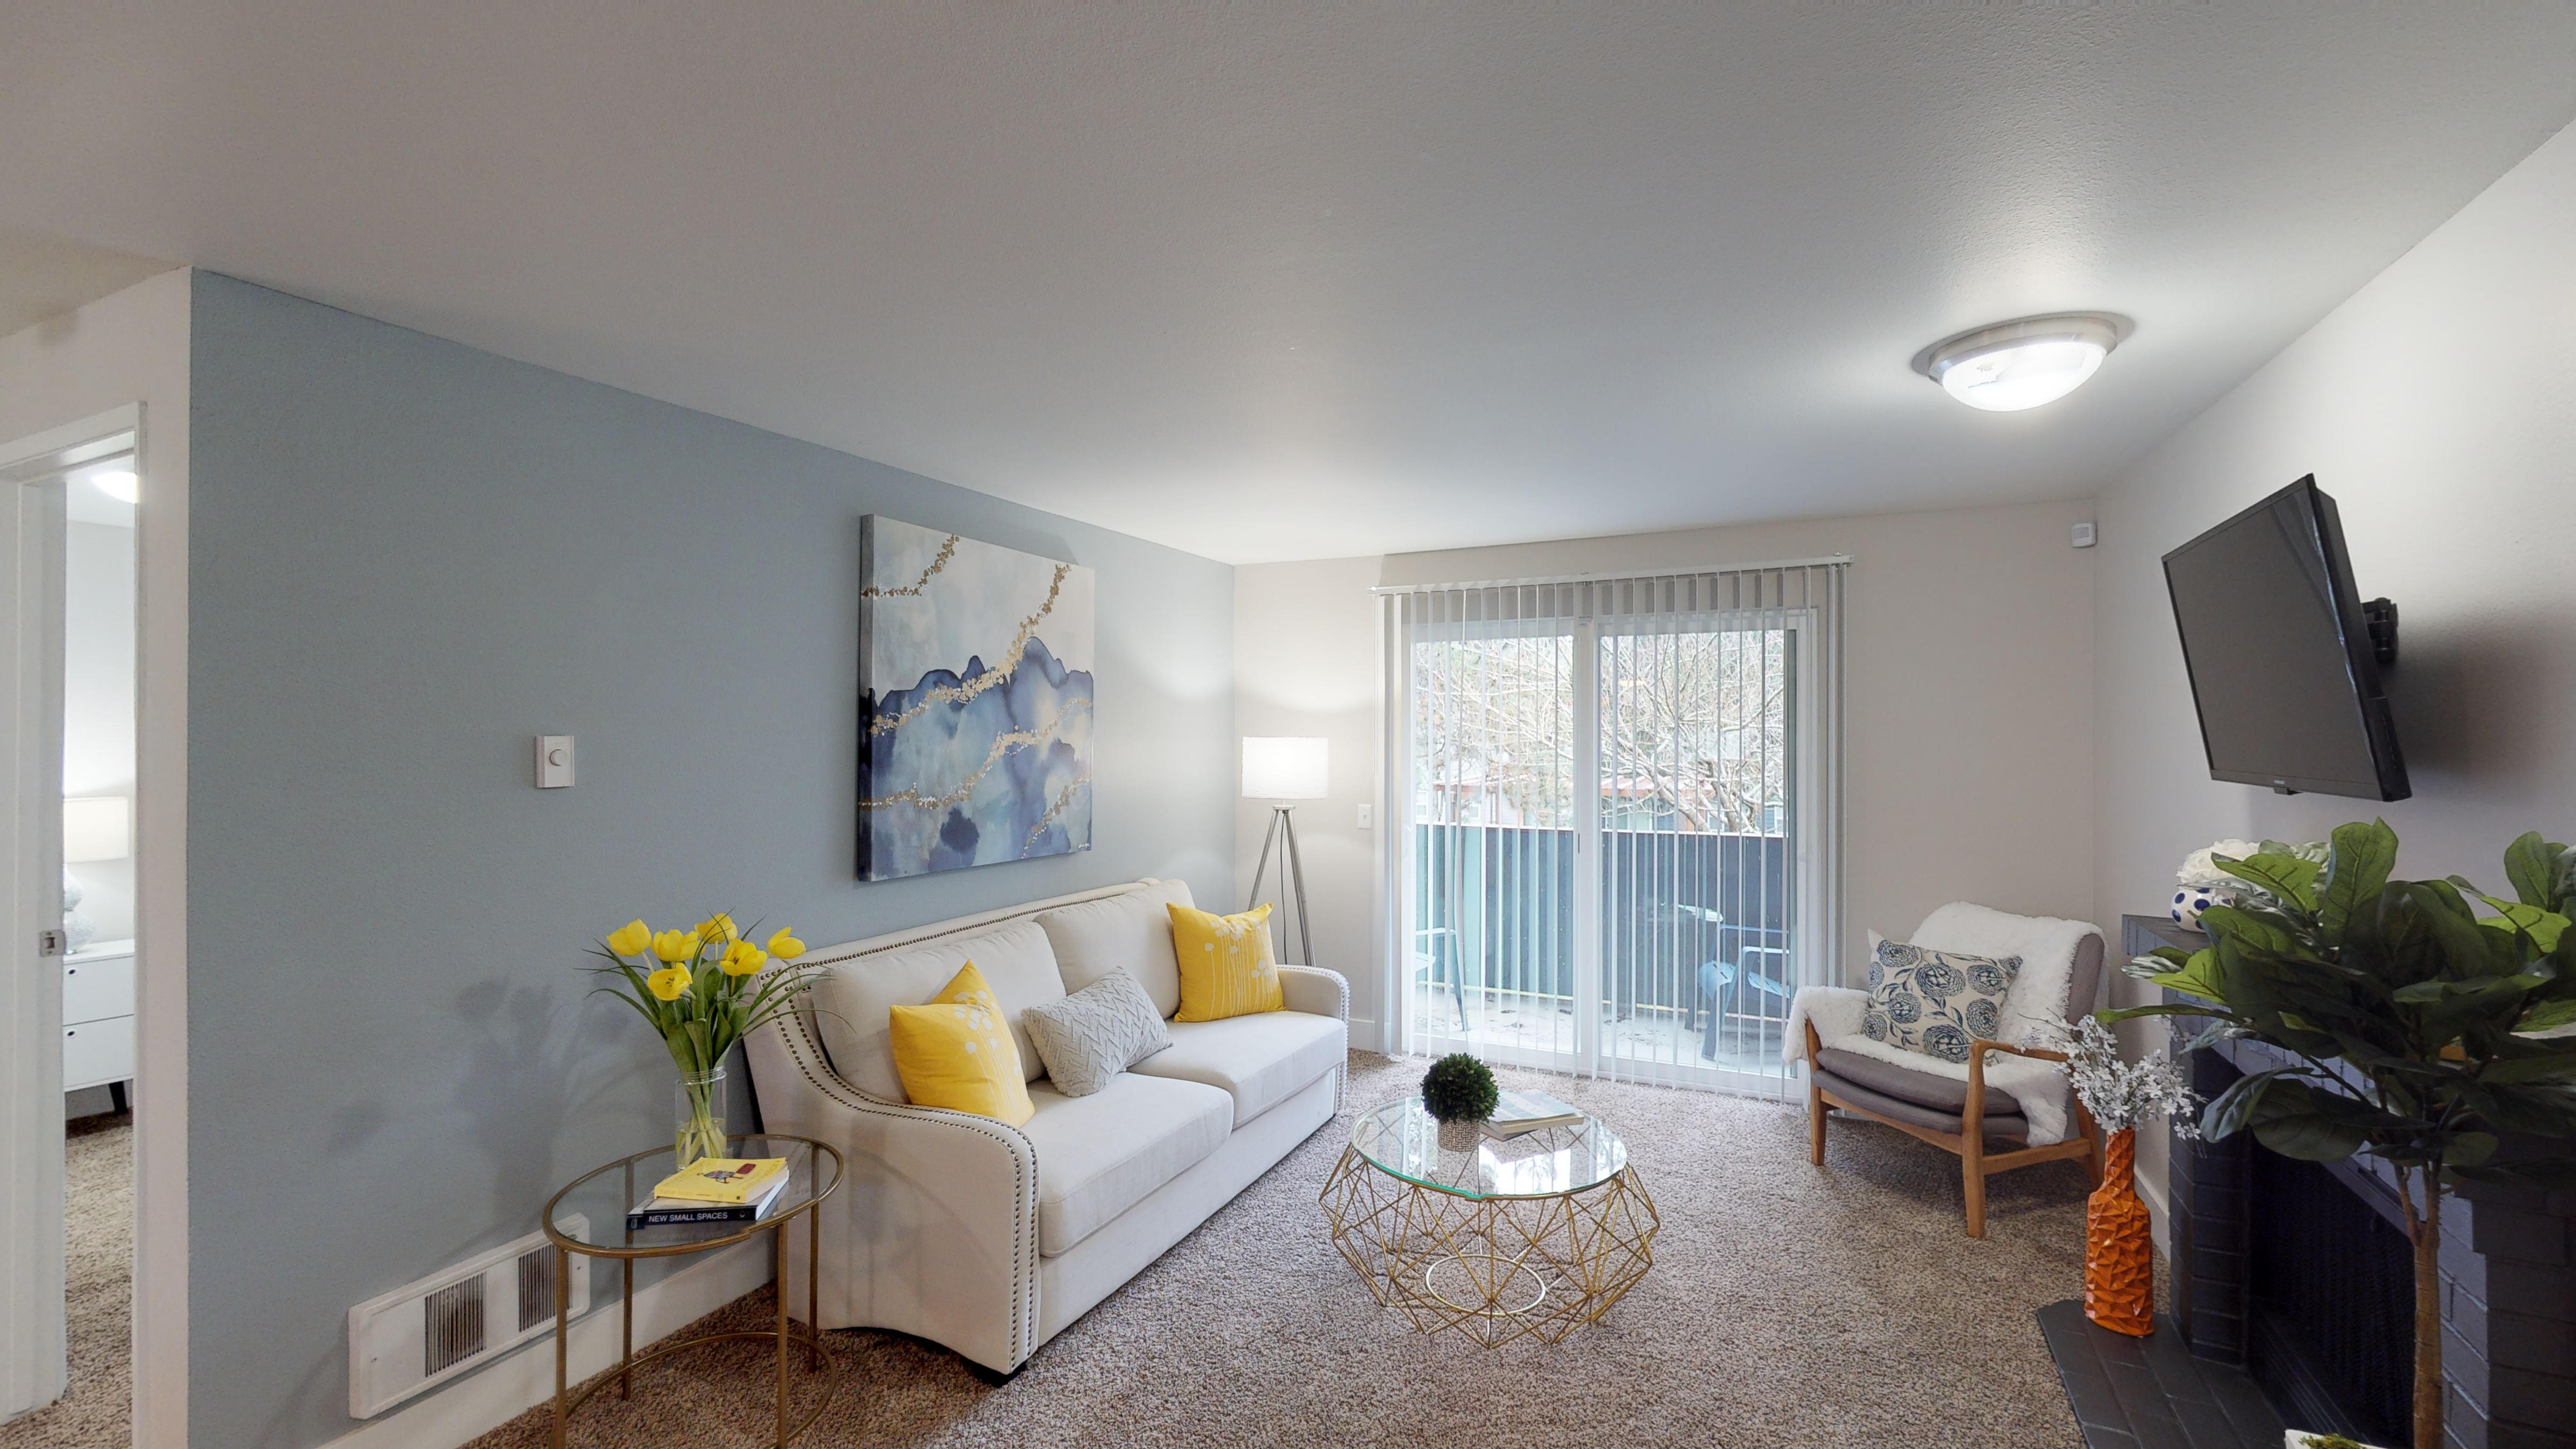 Apartments Near Green River Vibe for Green River Community College Students in Auburn, WA